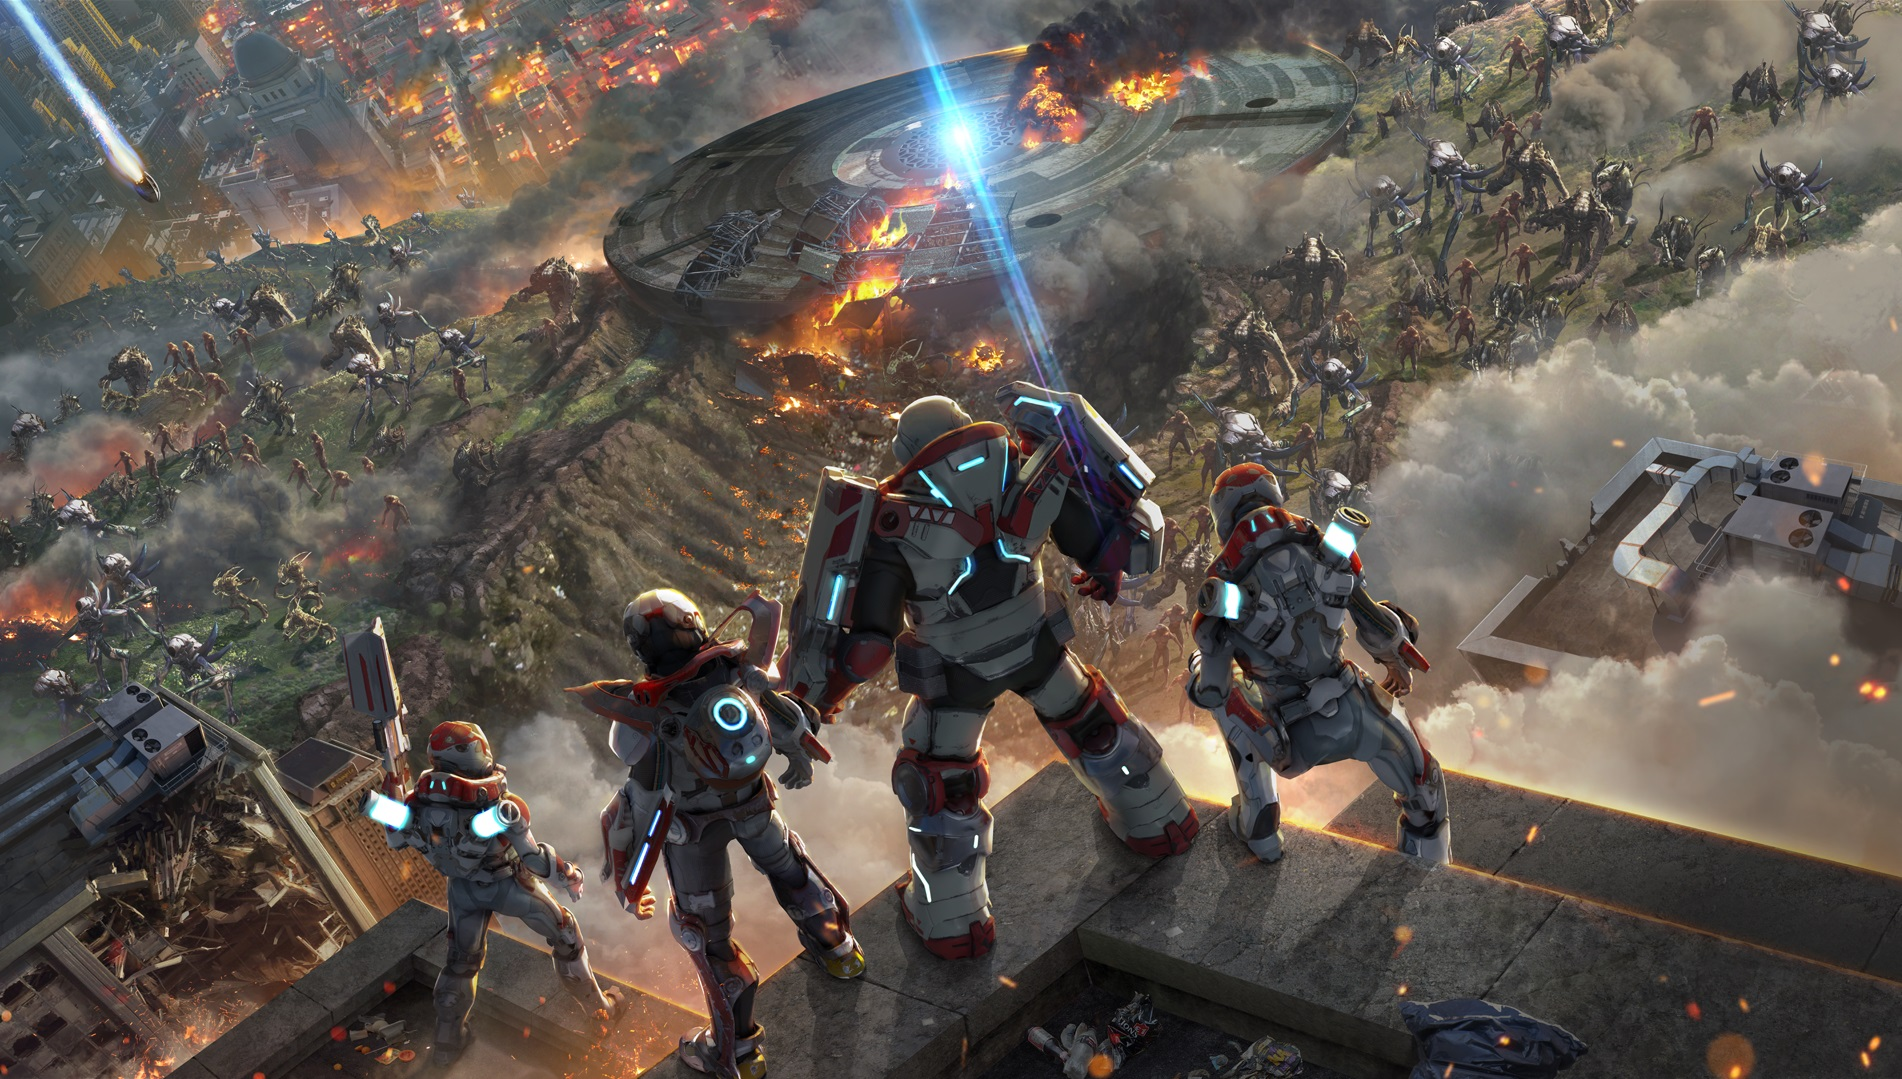 Multiplayer Games For Ps4 : Chaotic multiplayer shooter alienation launching for ps